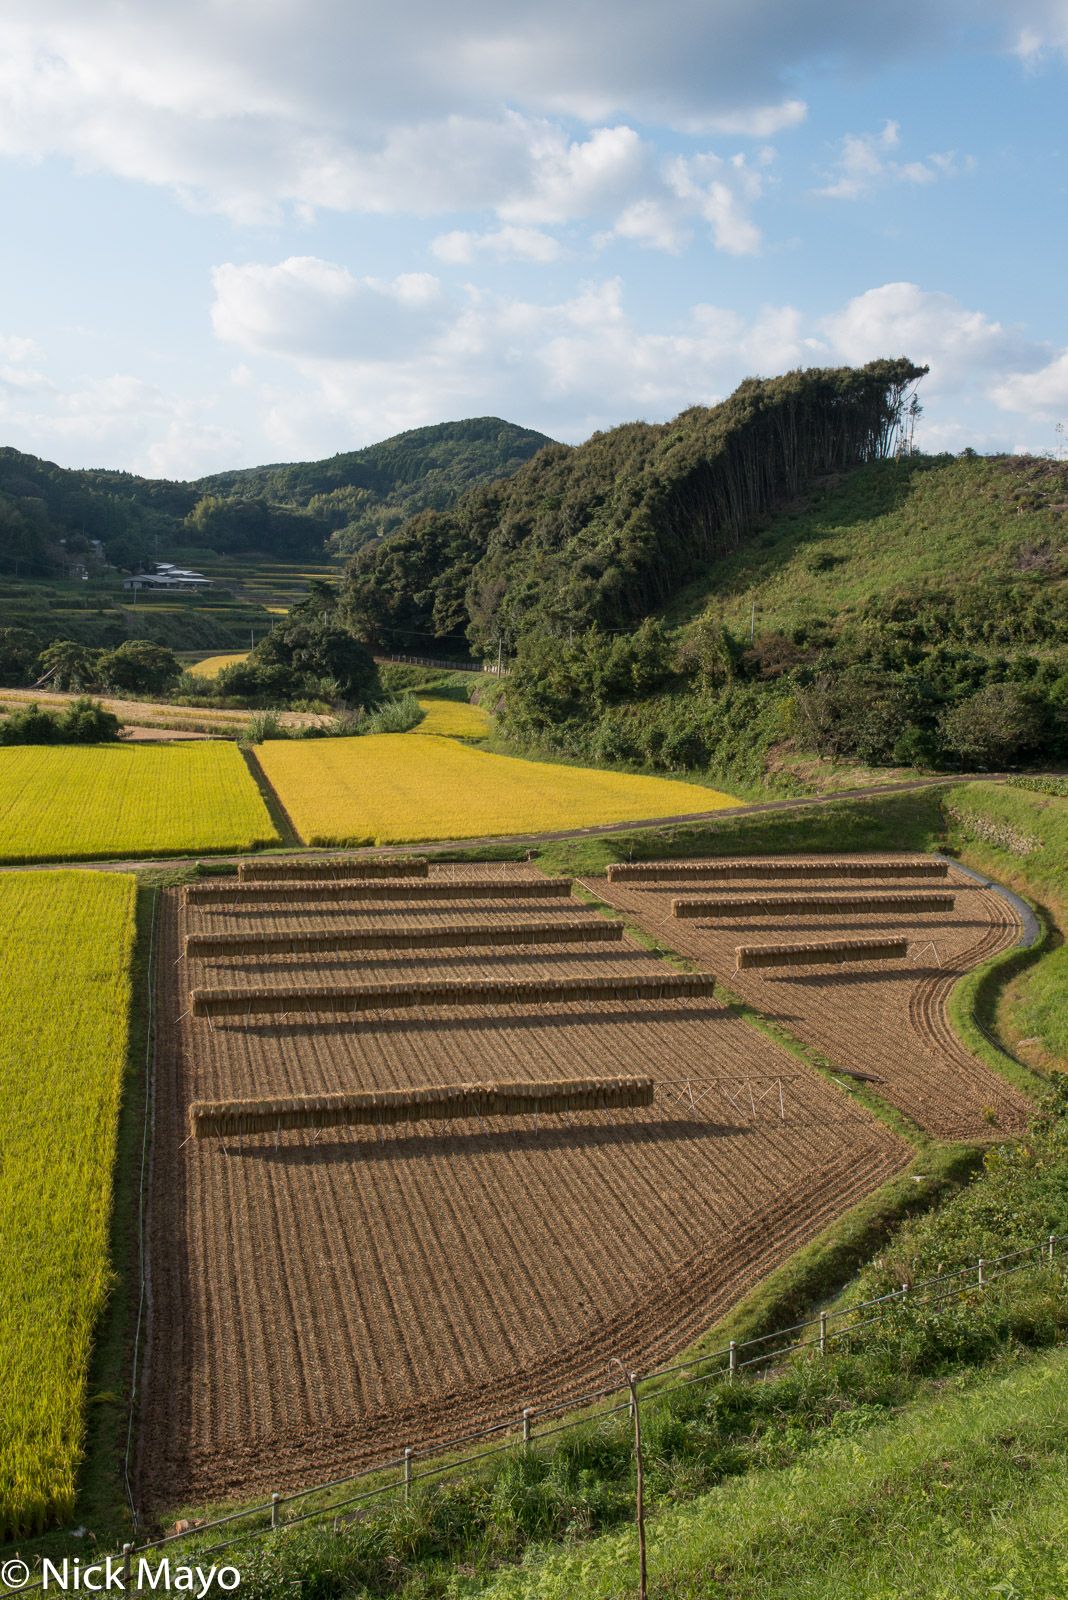 Drying Rack, Japan, Kyushu, Paddy, Agriculture